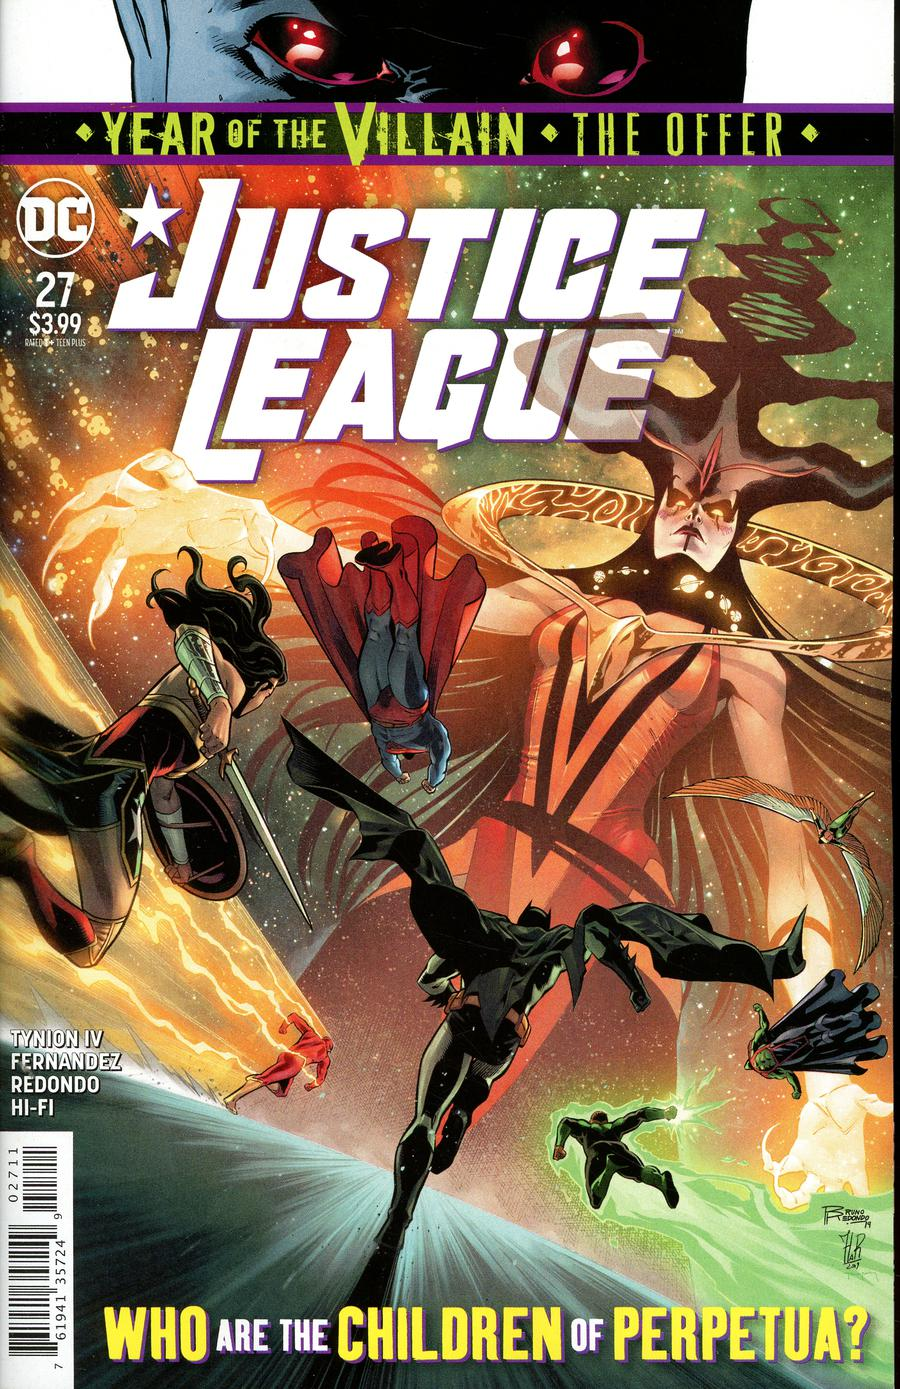 Justice League Vol 4 #27 Cover A Regular Bruno Redondo Cover (Year Of The Villain The Offer Tie-In)